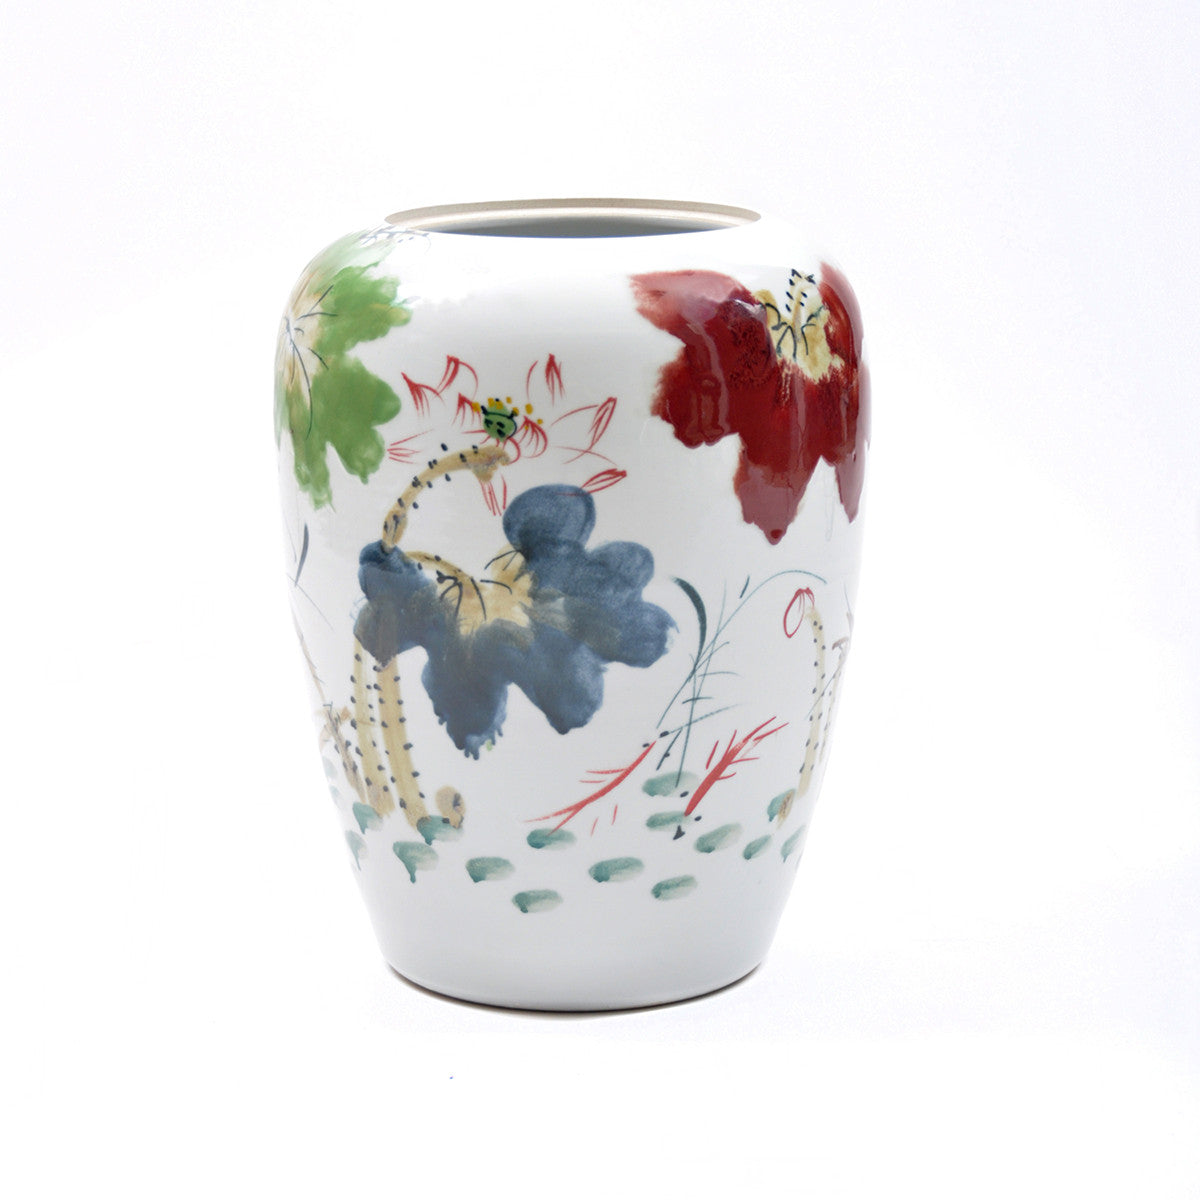 Handpainted Chinese Ceramic Vase